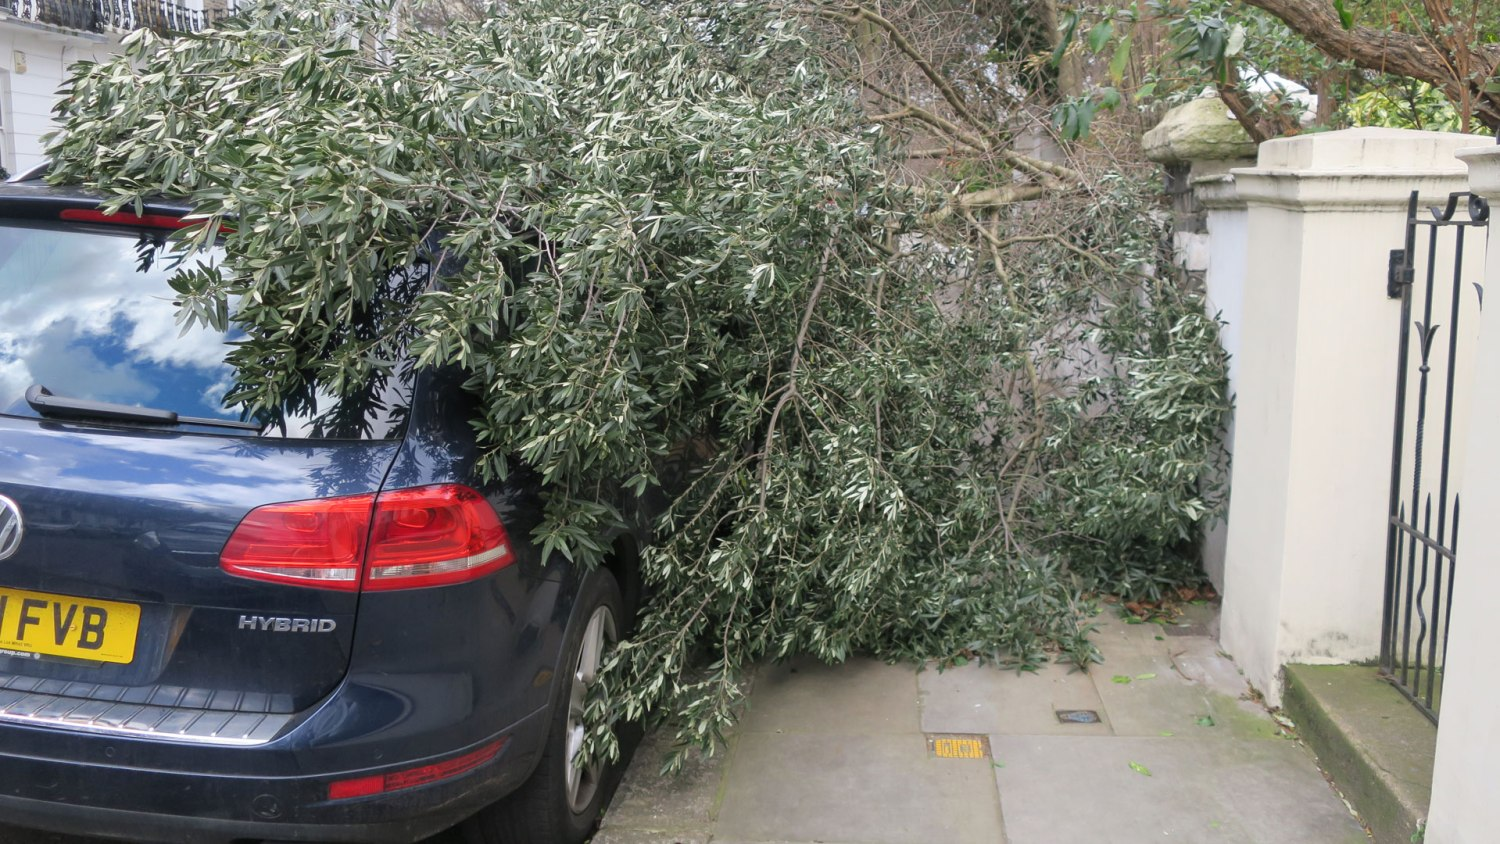 VW damaged by tree after strong winds